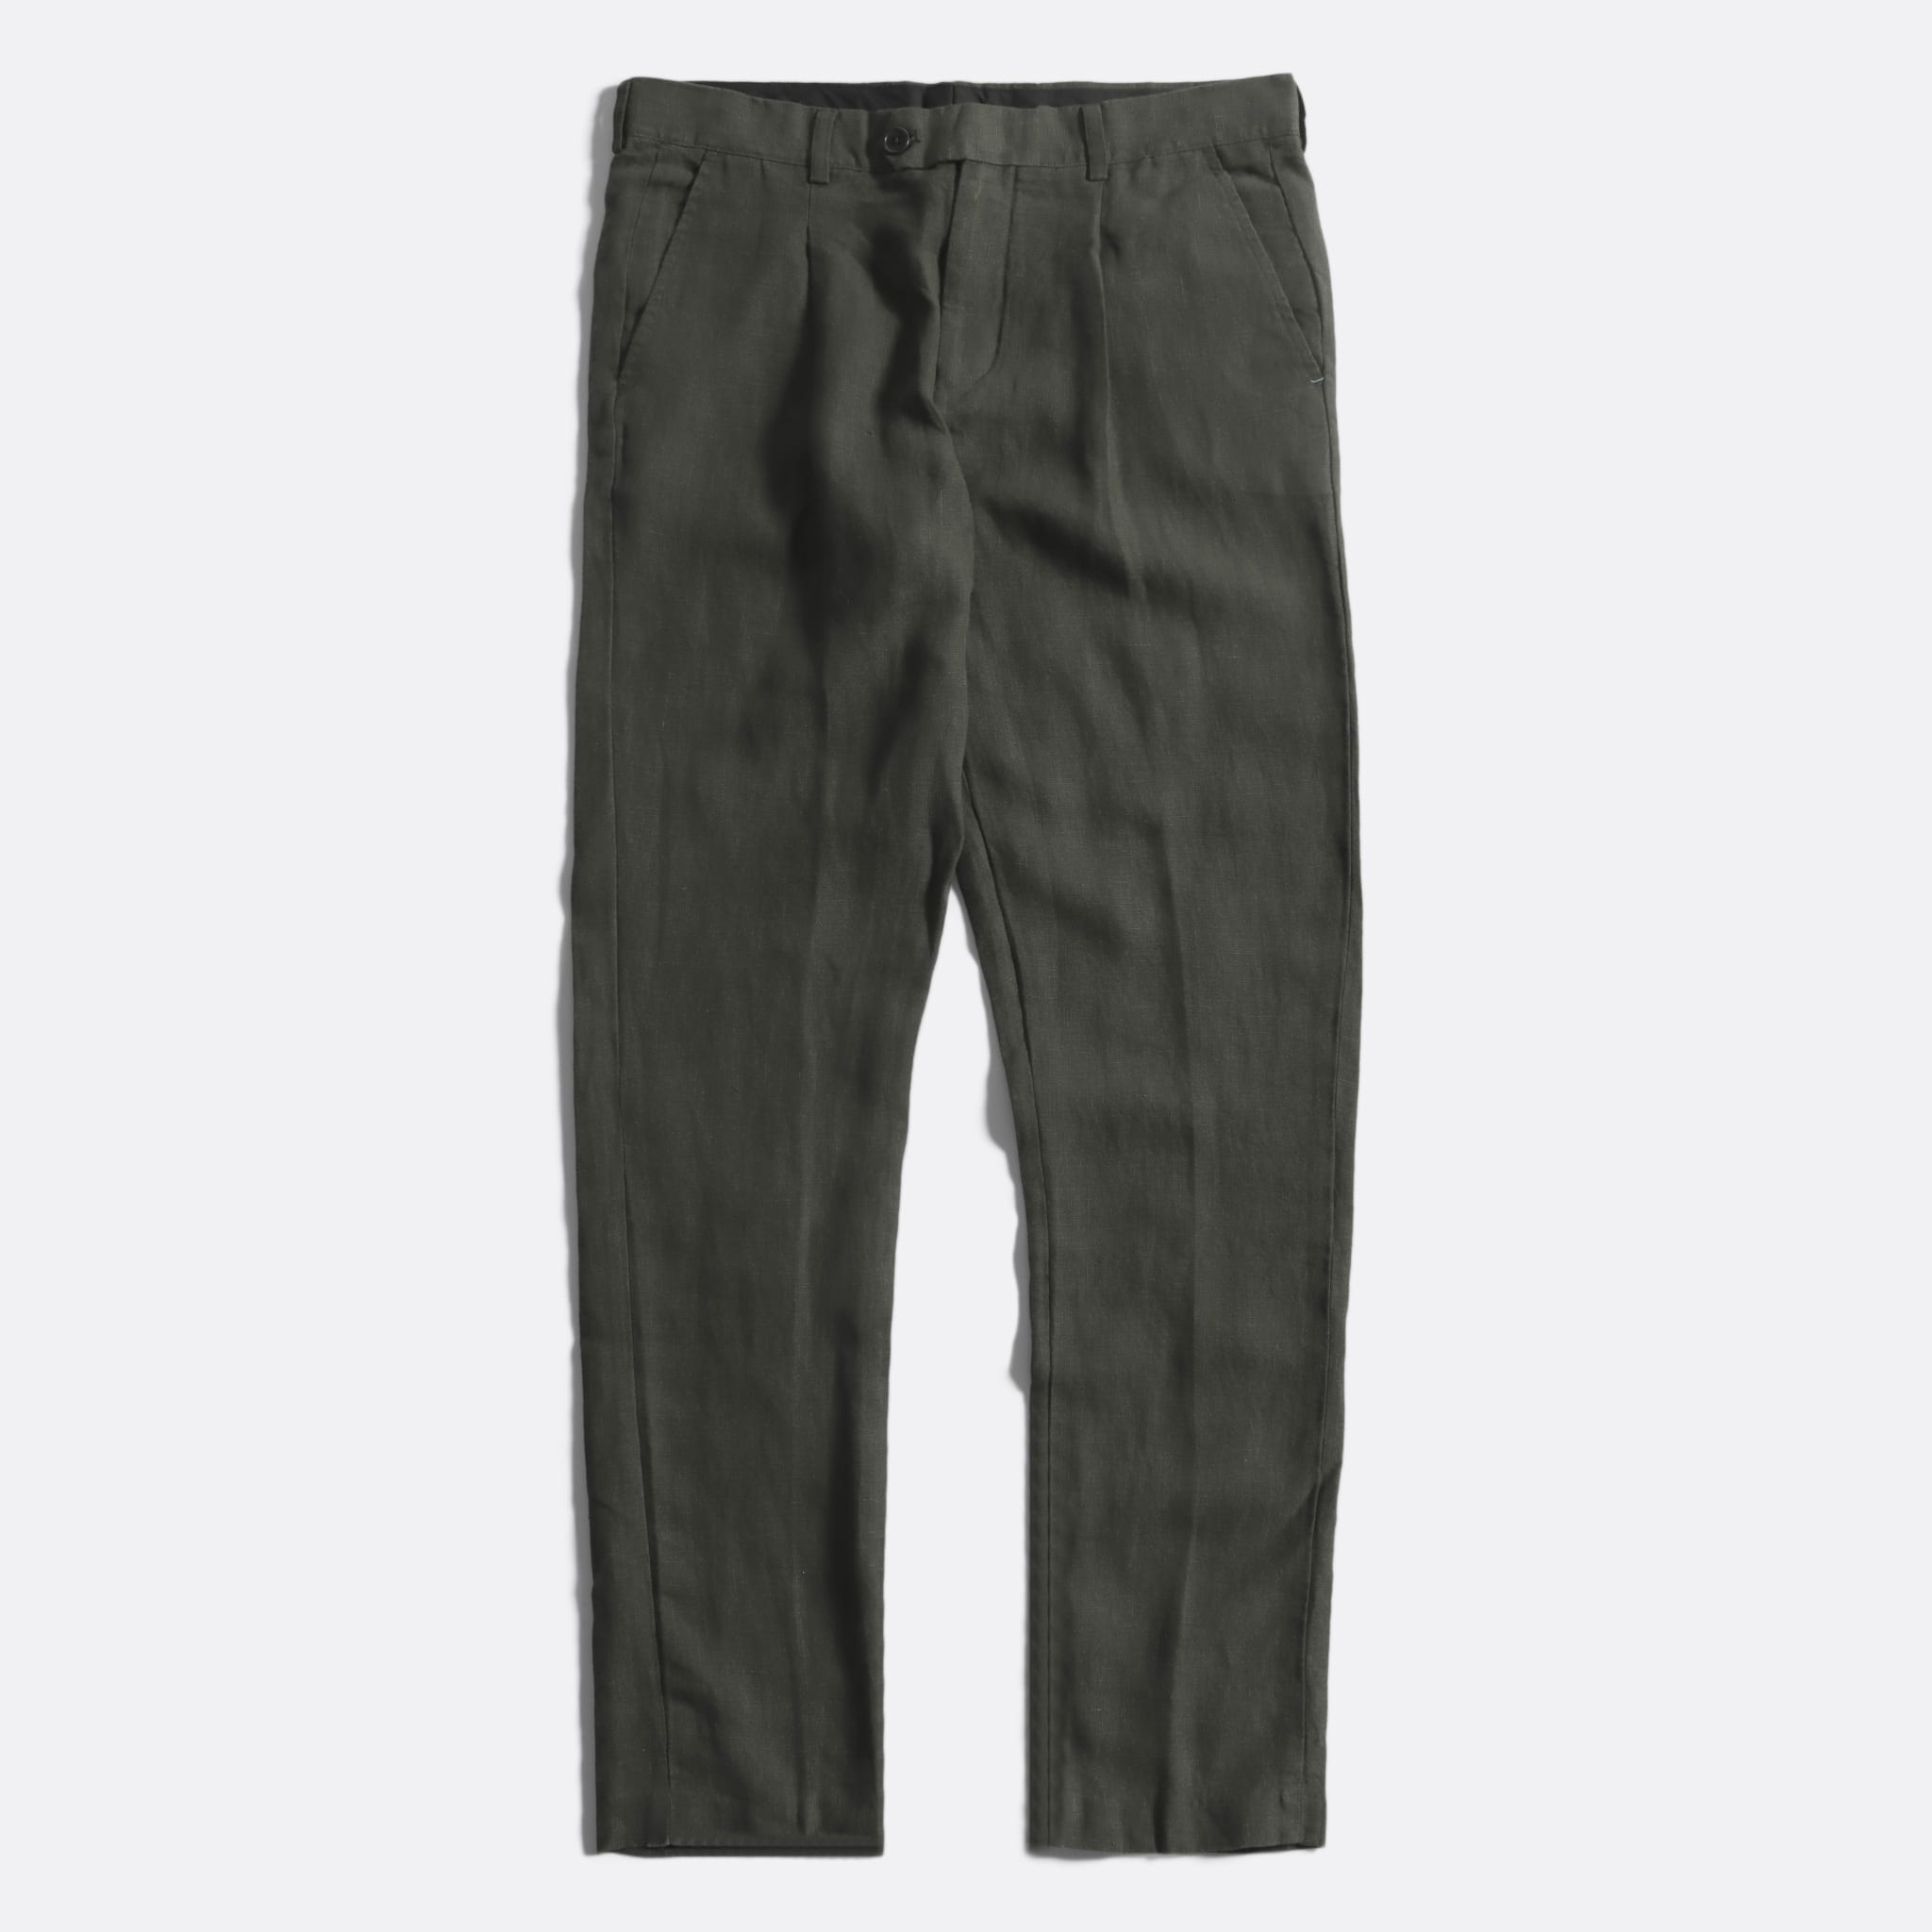 Far Afield Pleat Trousers a Grey Linen Fabric Smart Casual